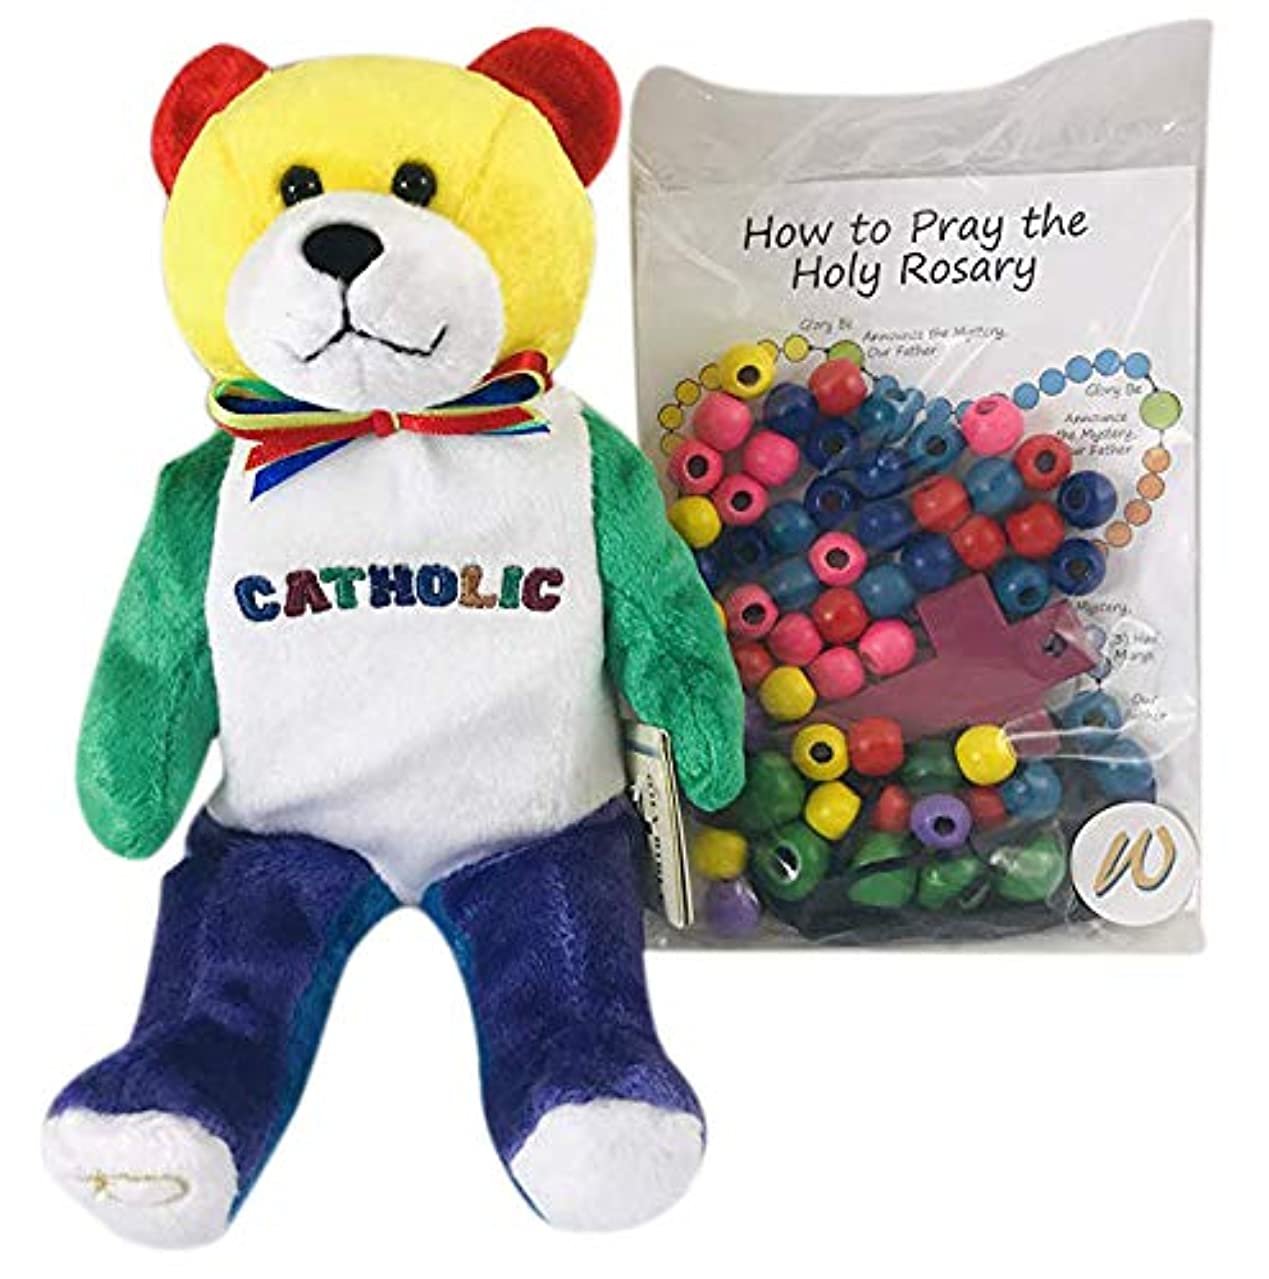 Make Your Own Rosary Craft with Plush Catholic Teddy Bear Gift Set